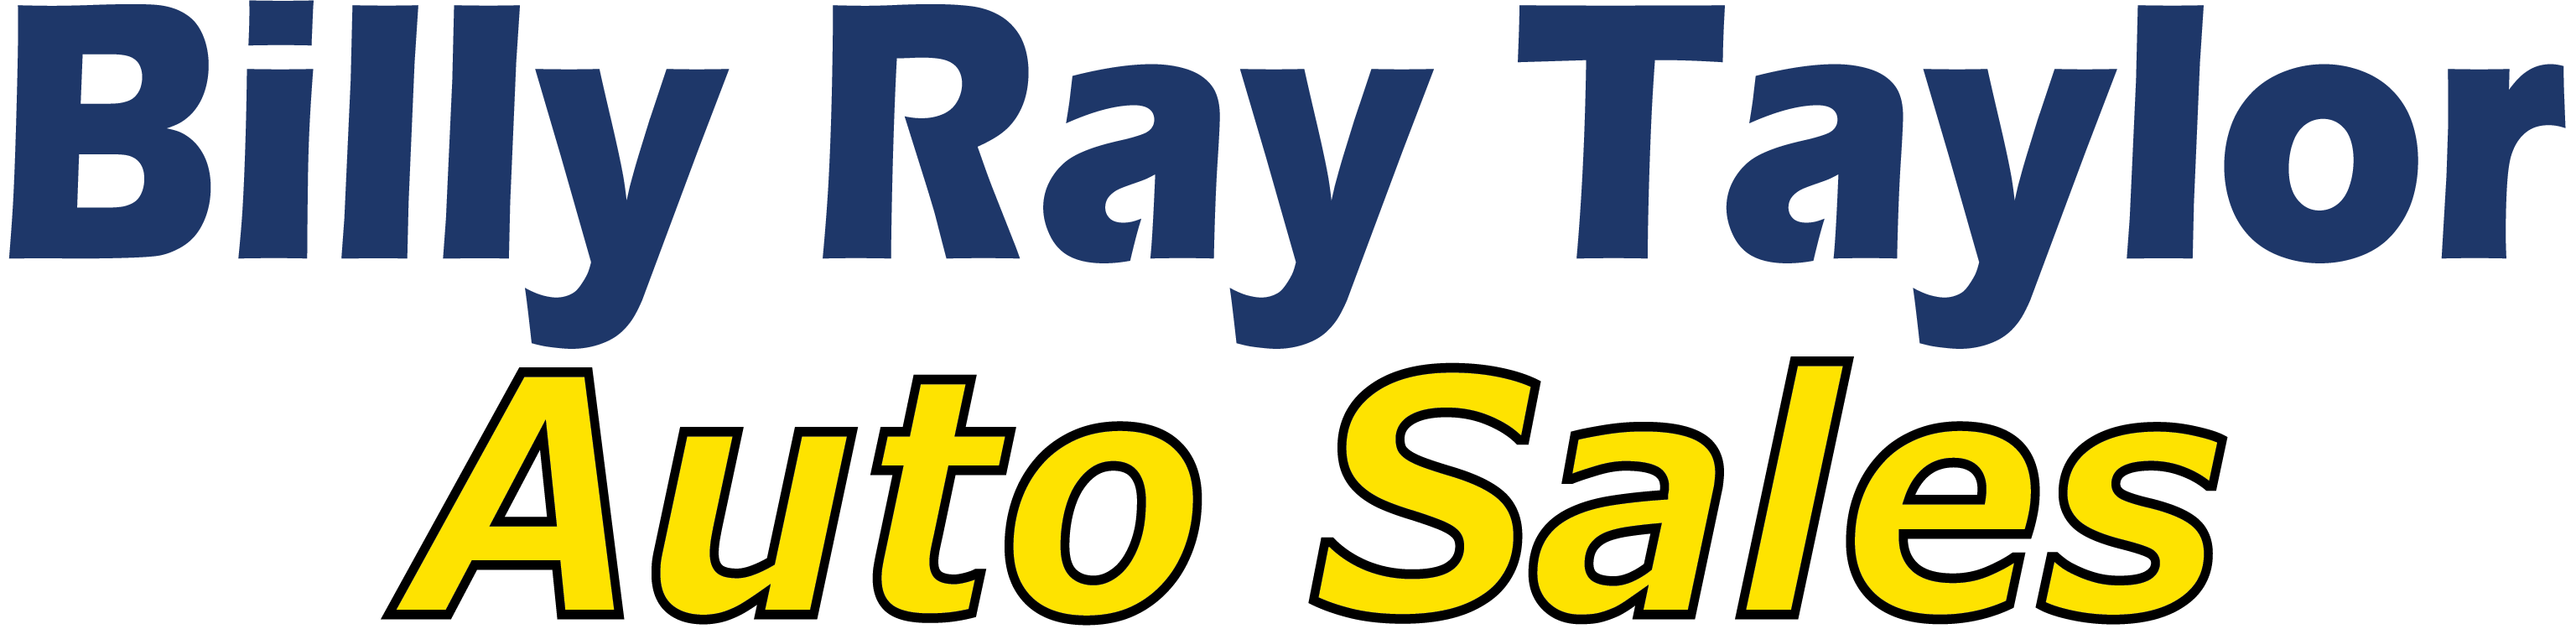 Billy Ray Taylor Auto Sales logo